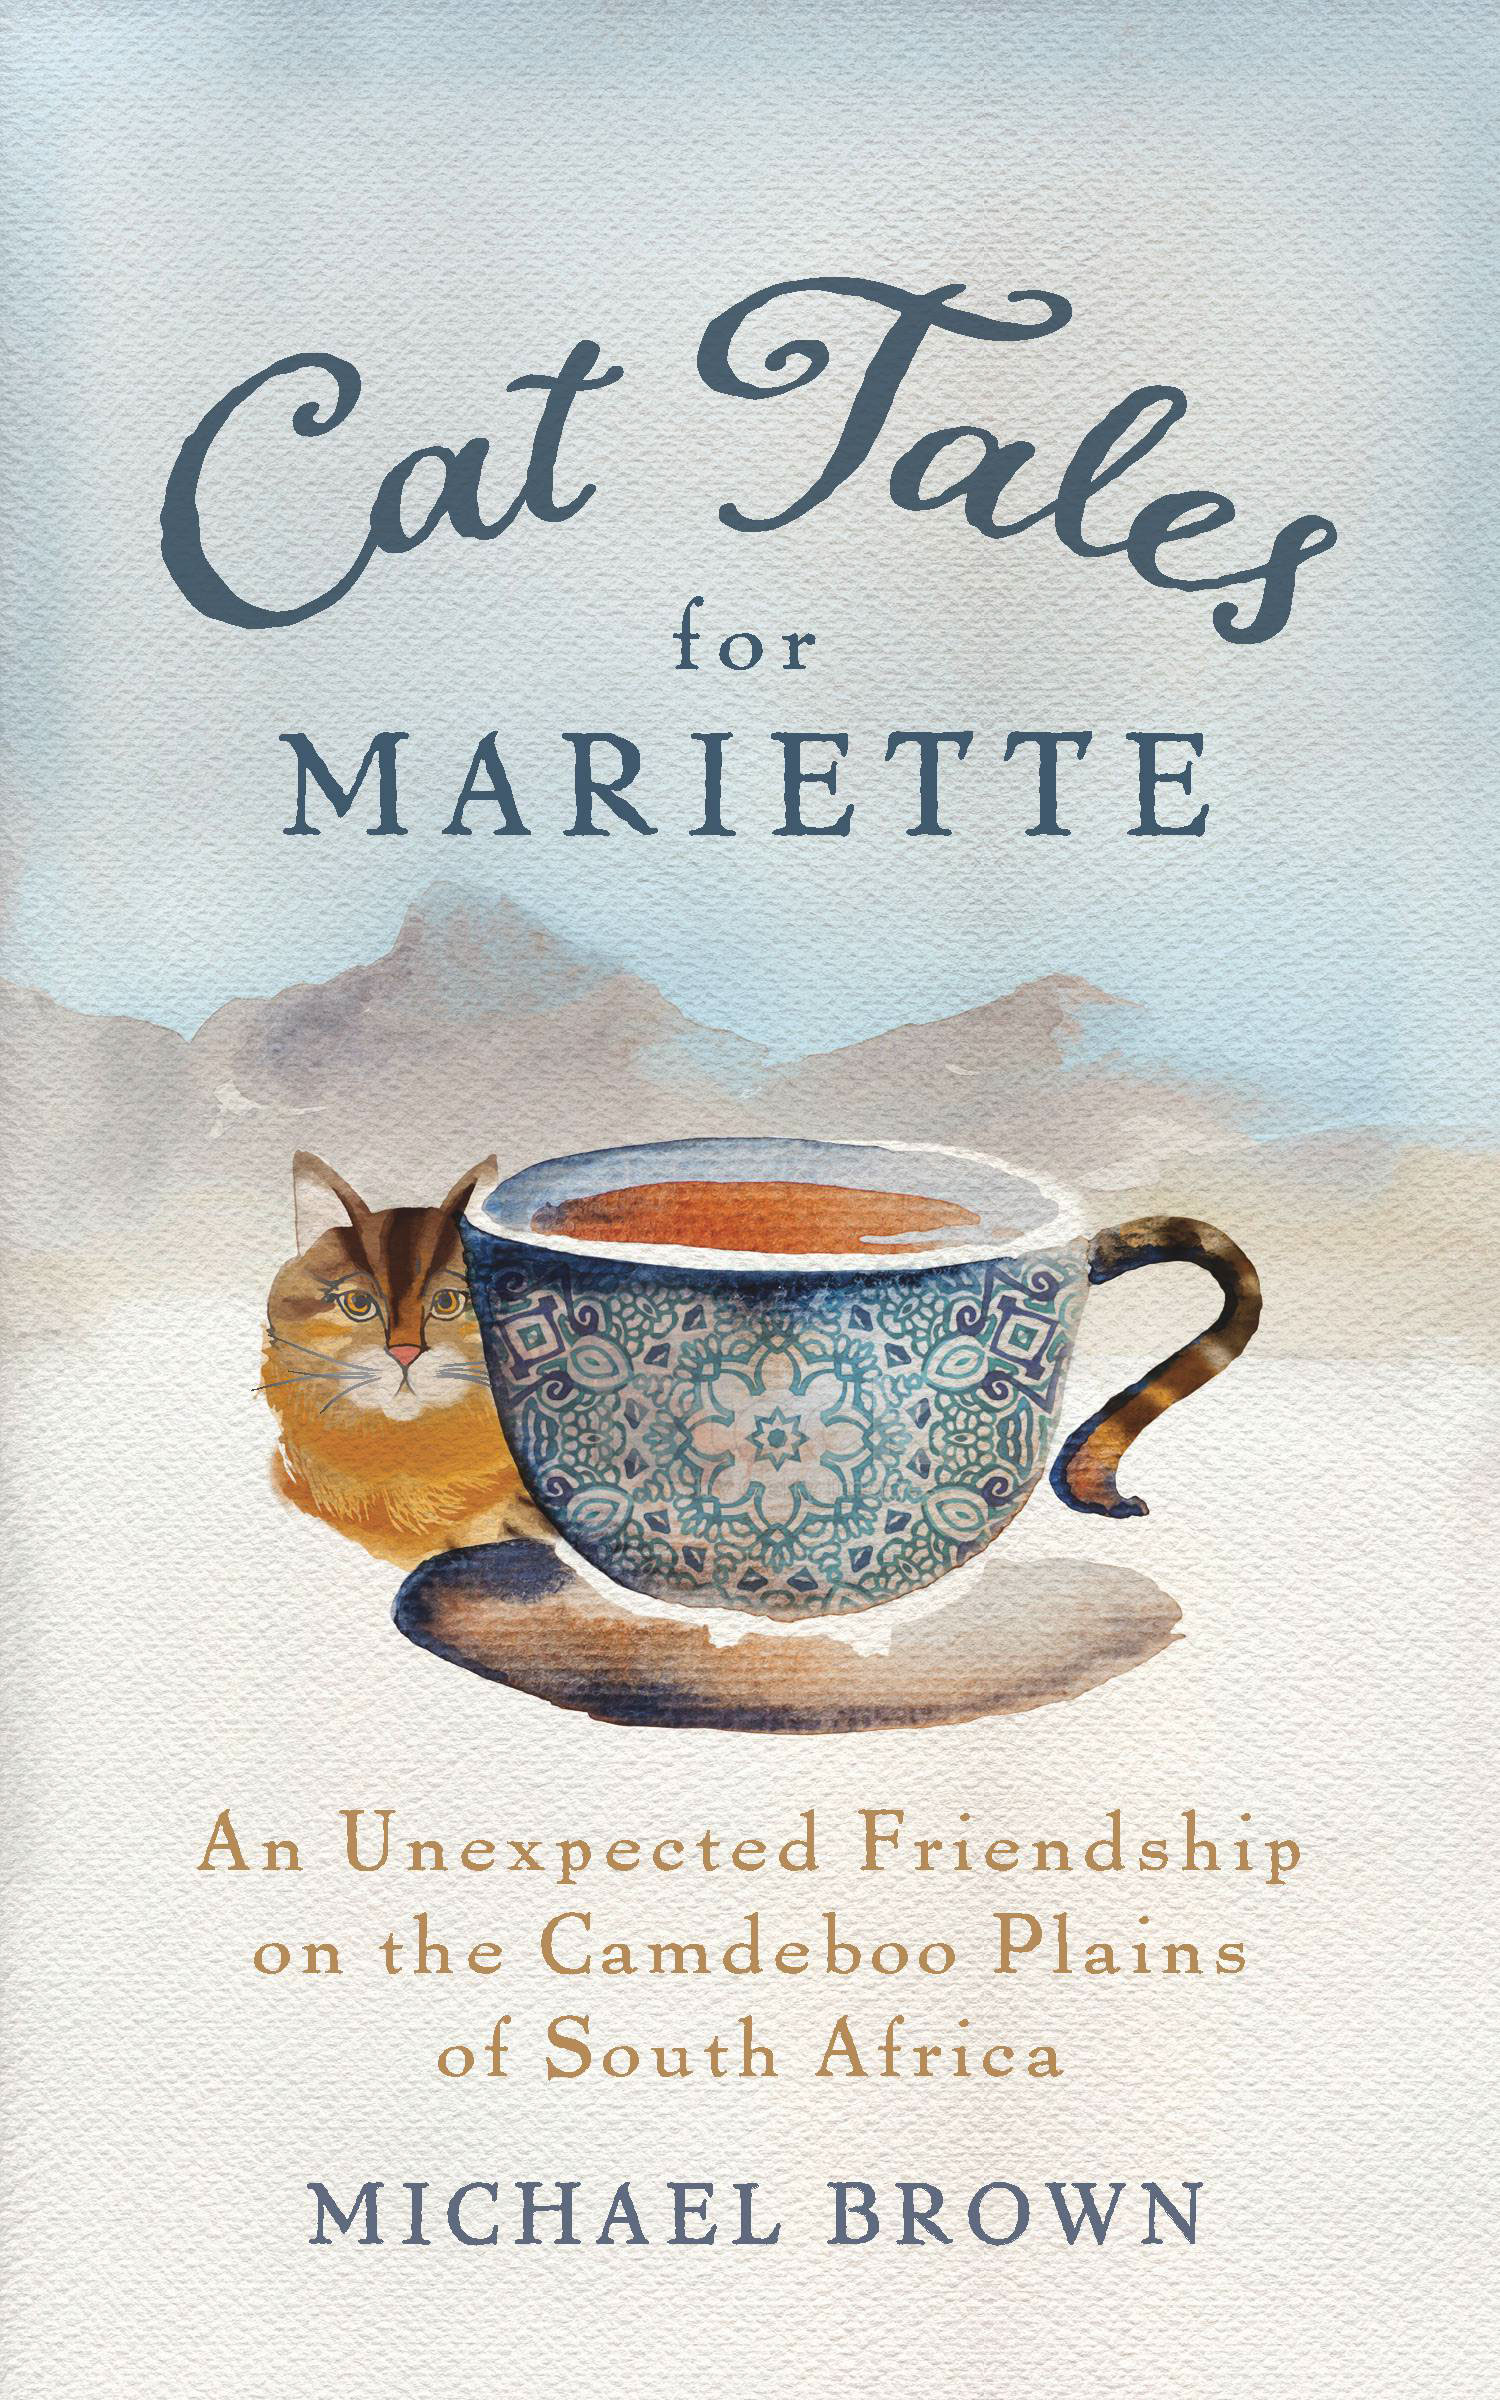 CAT TALES FOR MARIETTE  Michael Brown